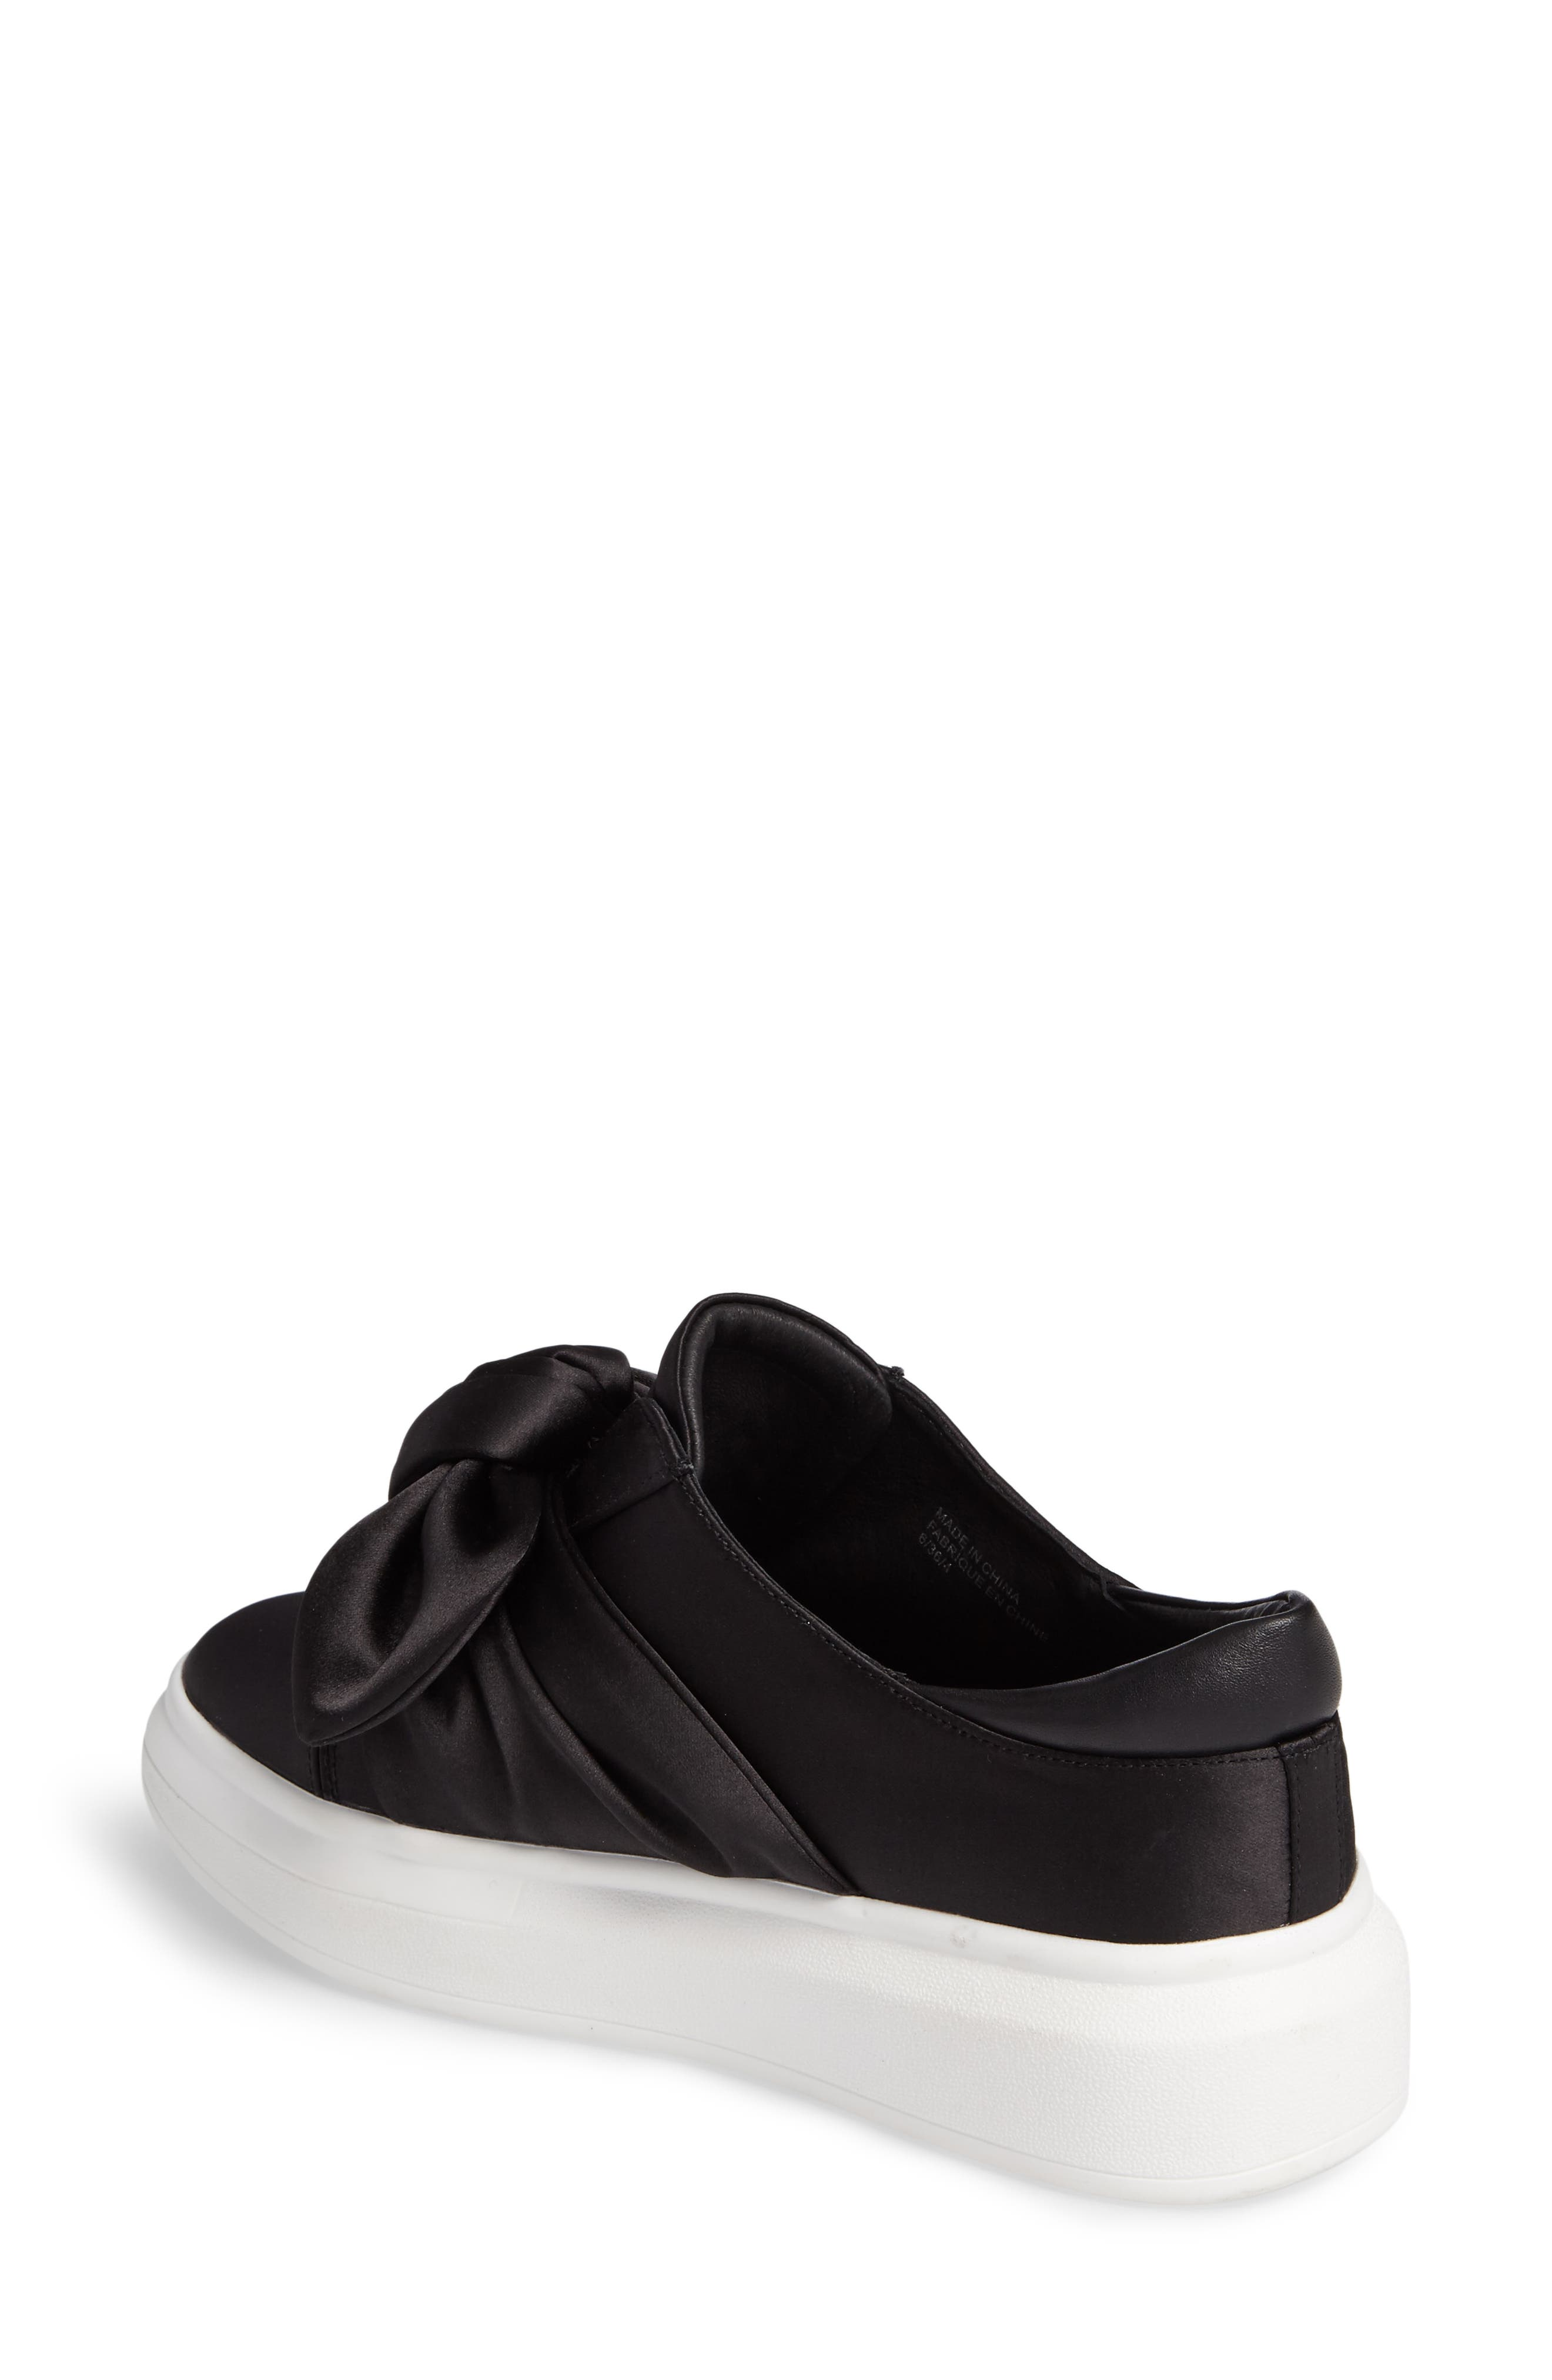 Alternate Image 2  - Shellys London Edgar Slip-On Sneaker (Women)